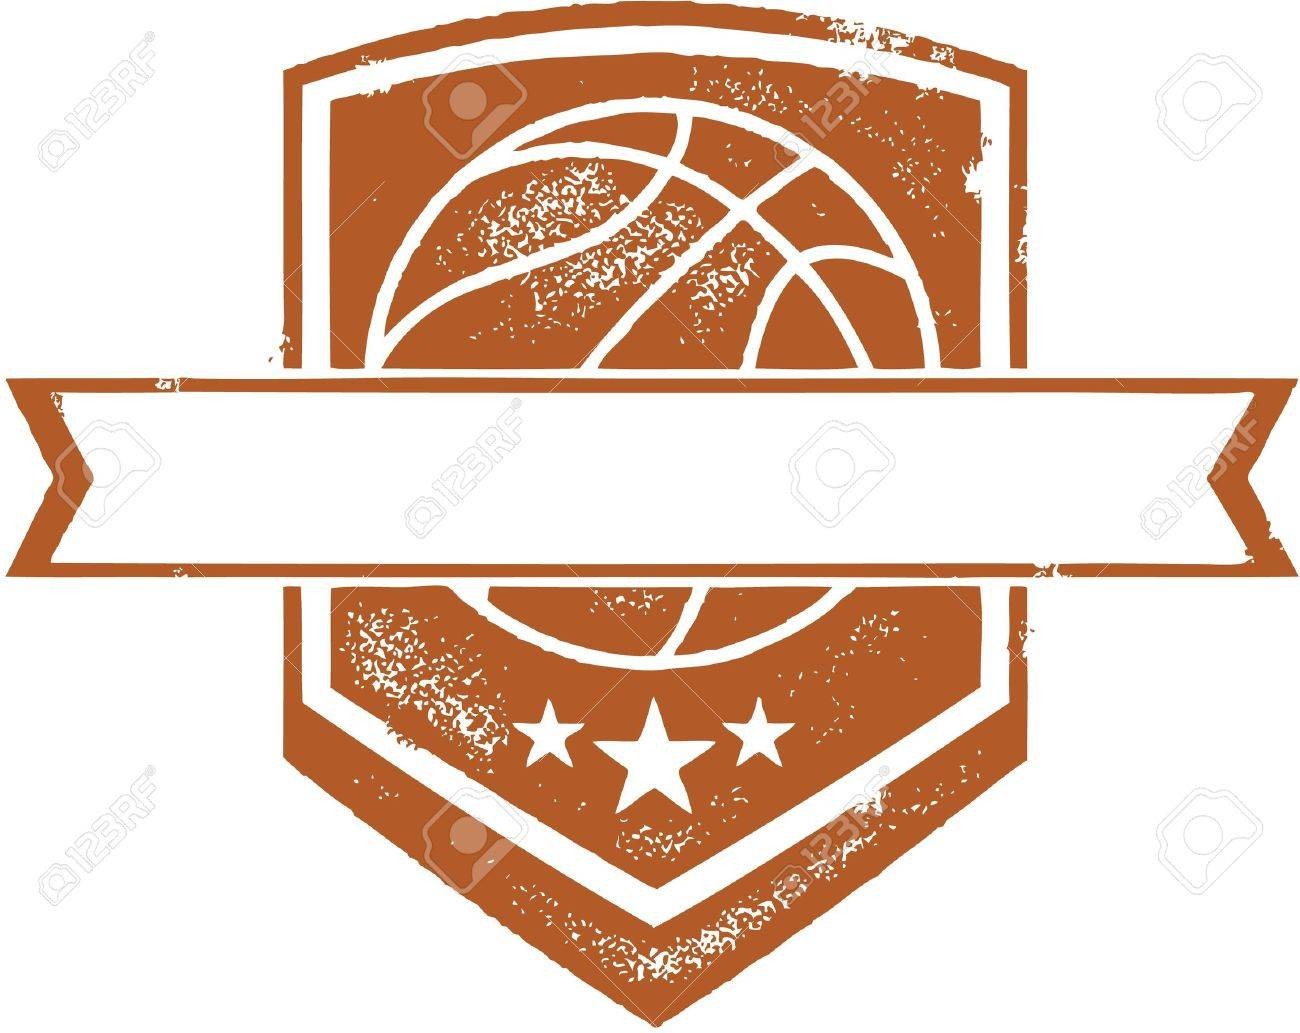 Basketball Team Crest Stock Vector - 20660179